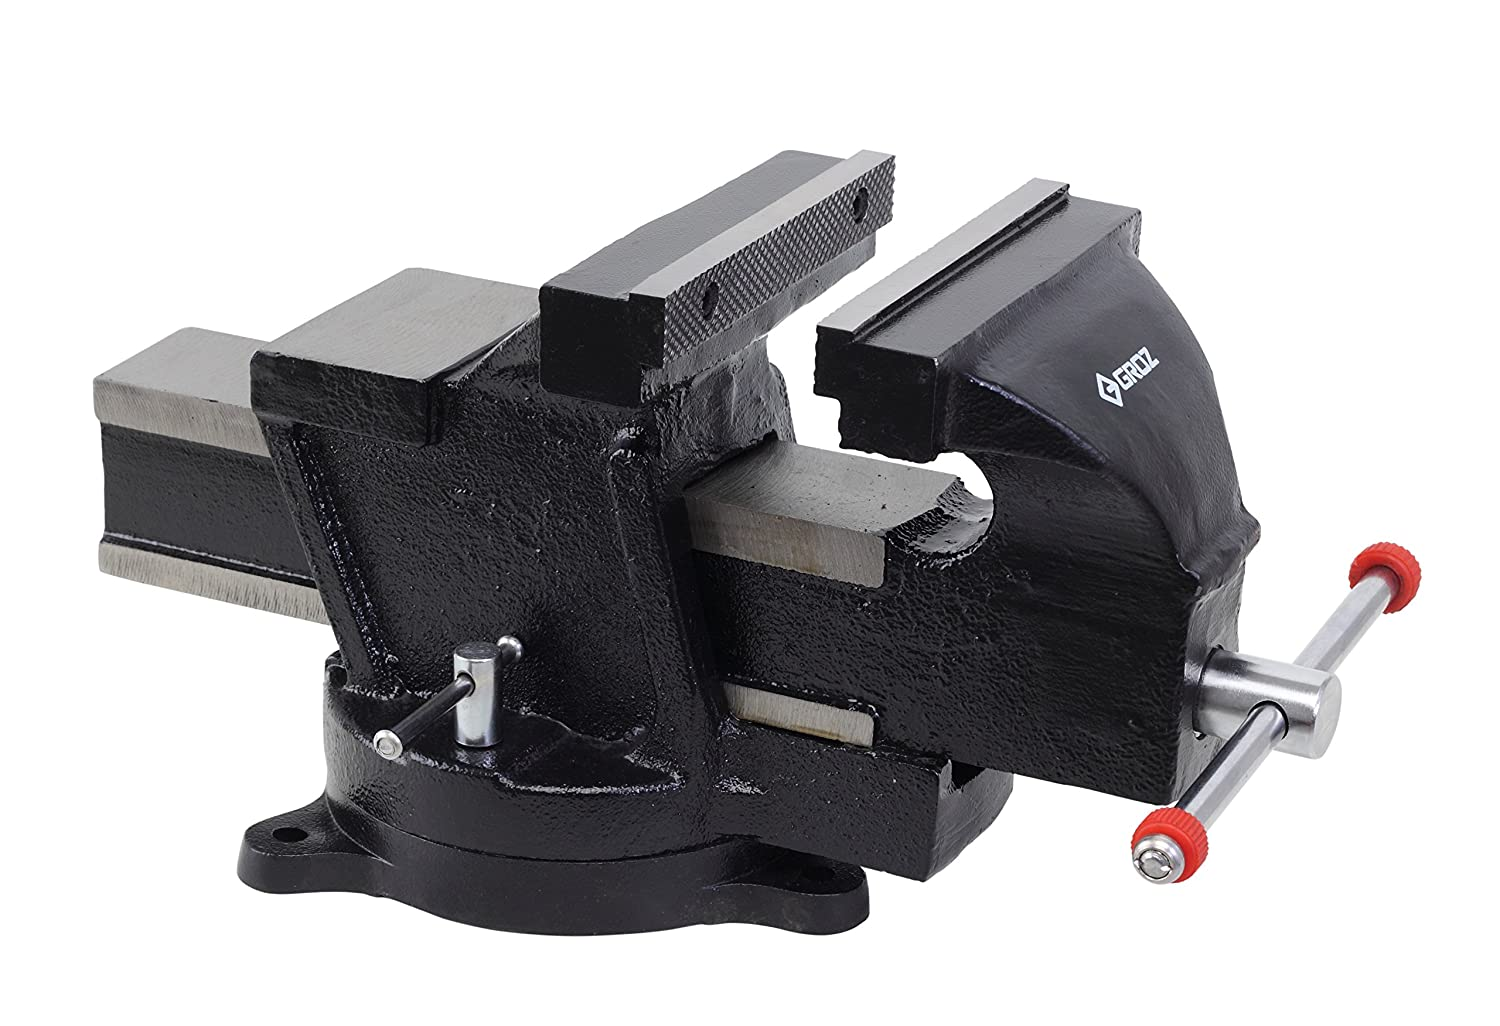 Groz Max 50% OFF 6-inch Mechanic's Bench Vise Cast Swivel Iron excellence Base